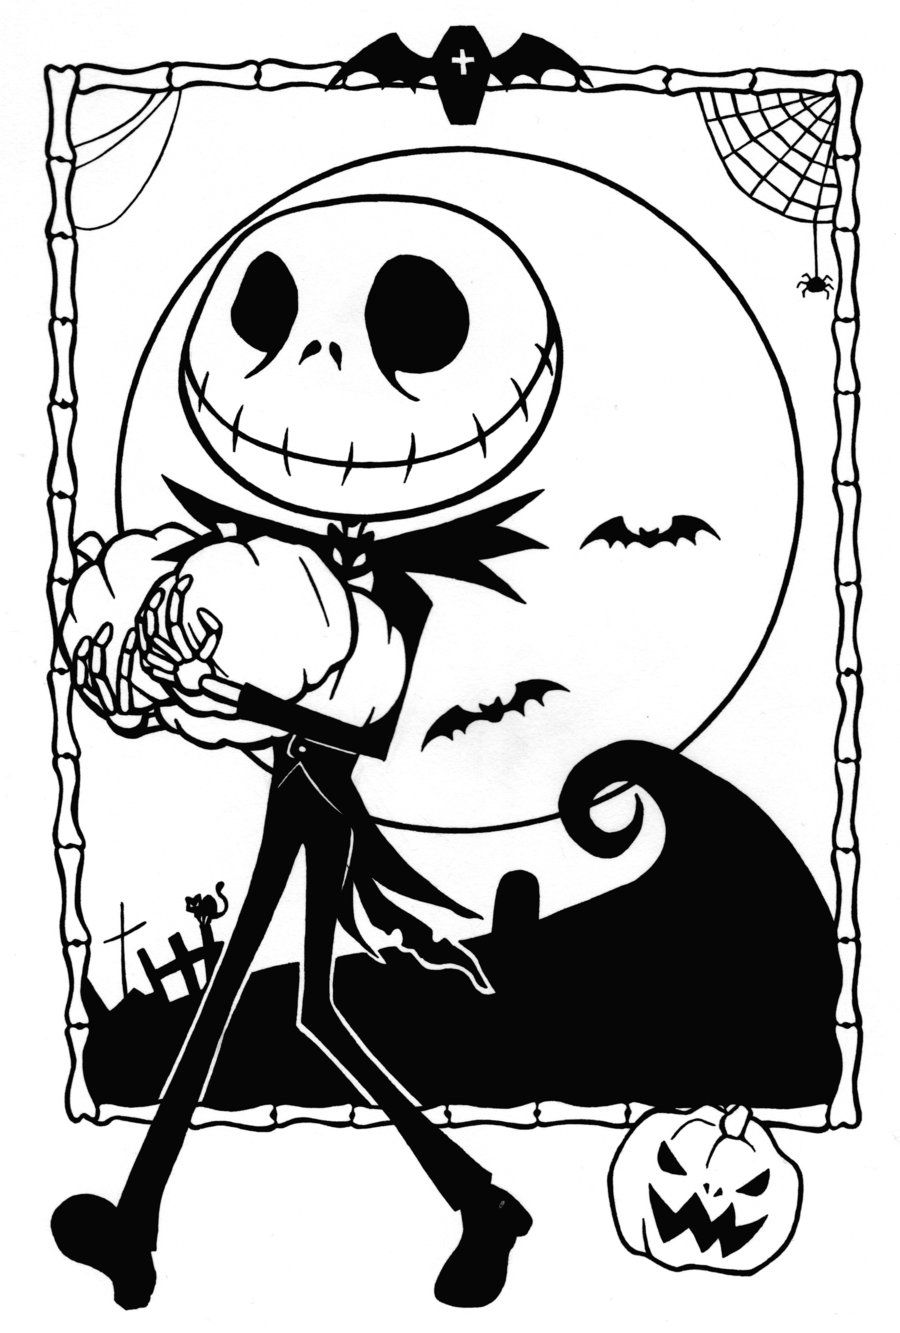 Free Printable Nightmare Before Christmas Coloring Pages Halloween Coloring Pages Christmas Coloring Books Halloween Coloring